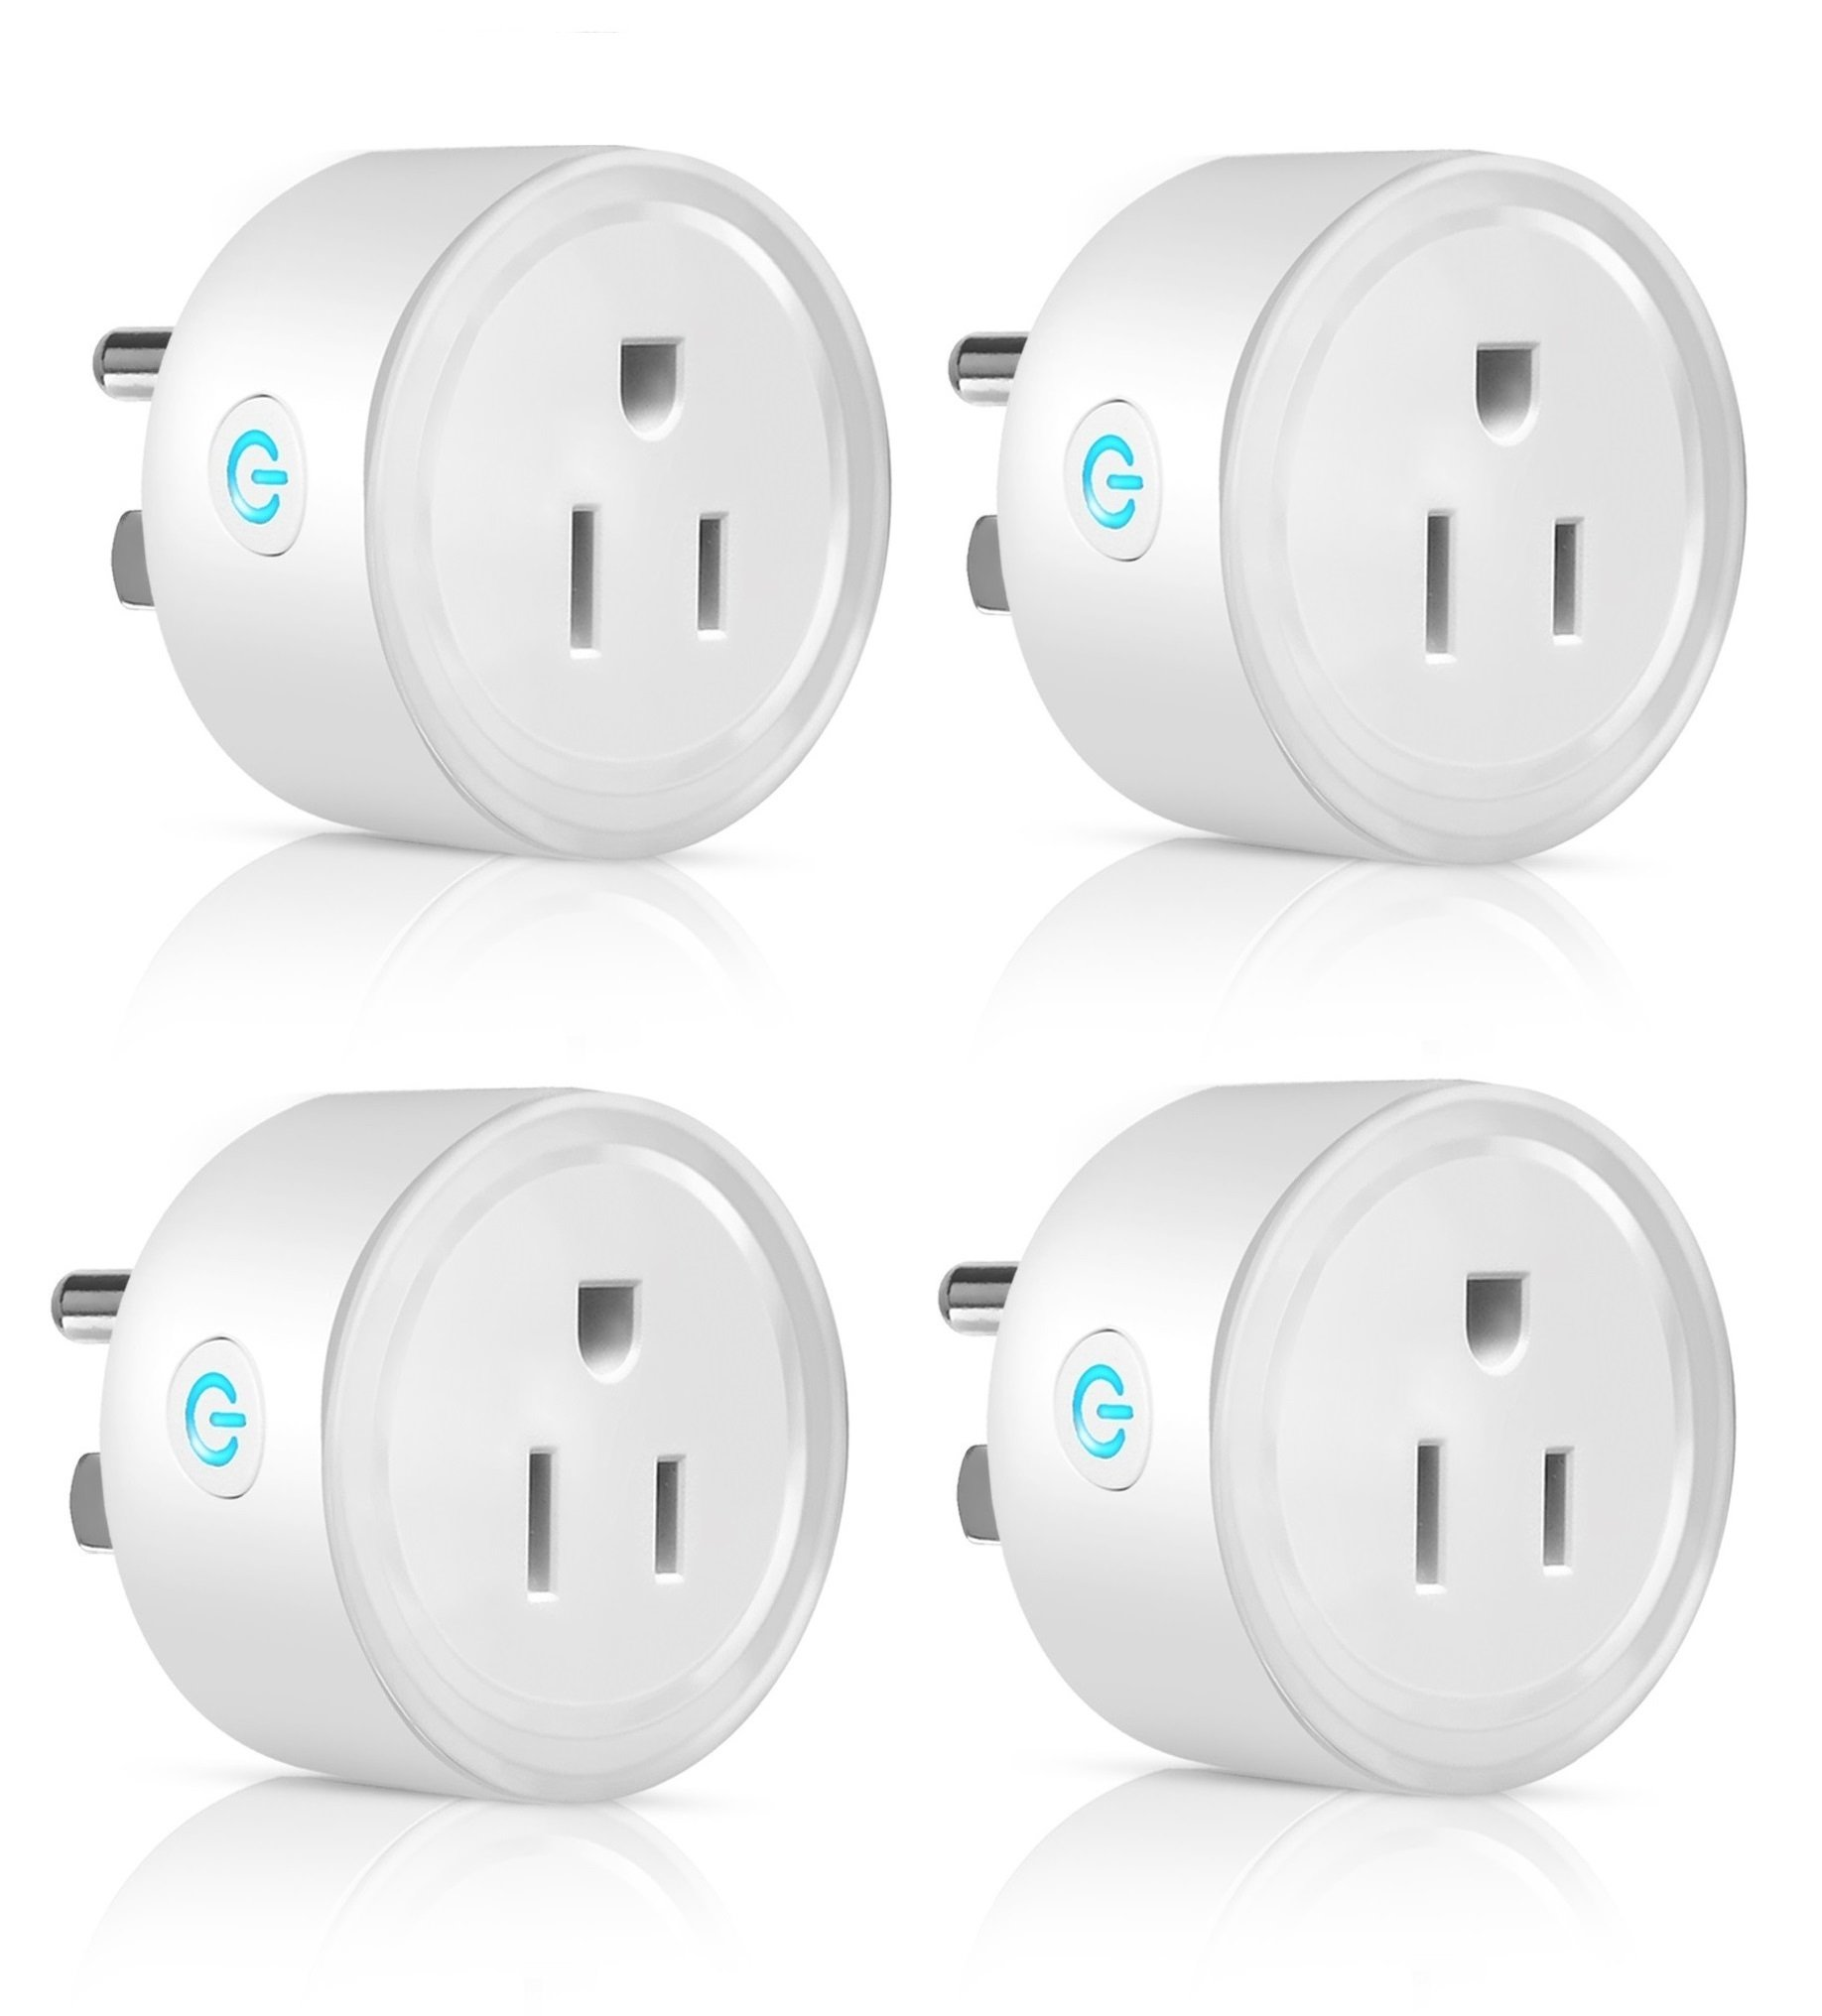 Mini Smart Plug WiFi Enabled,Wireless Outlet, Amazon Alexa Compatible, Google home Assistant Compatible, No Hub Required, Timing Function, Remote Control Smart Home Device 4 Pack